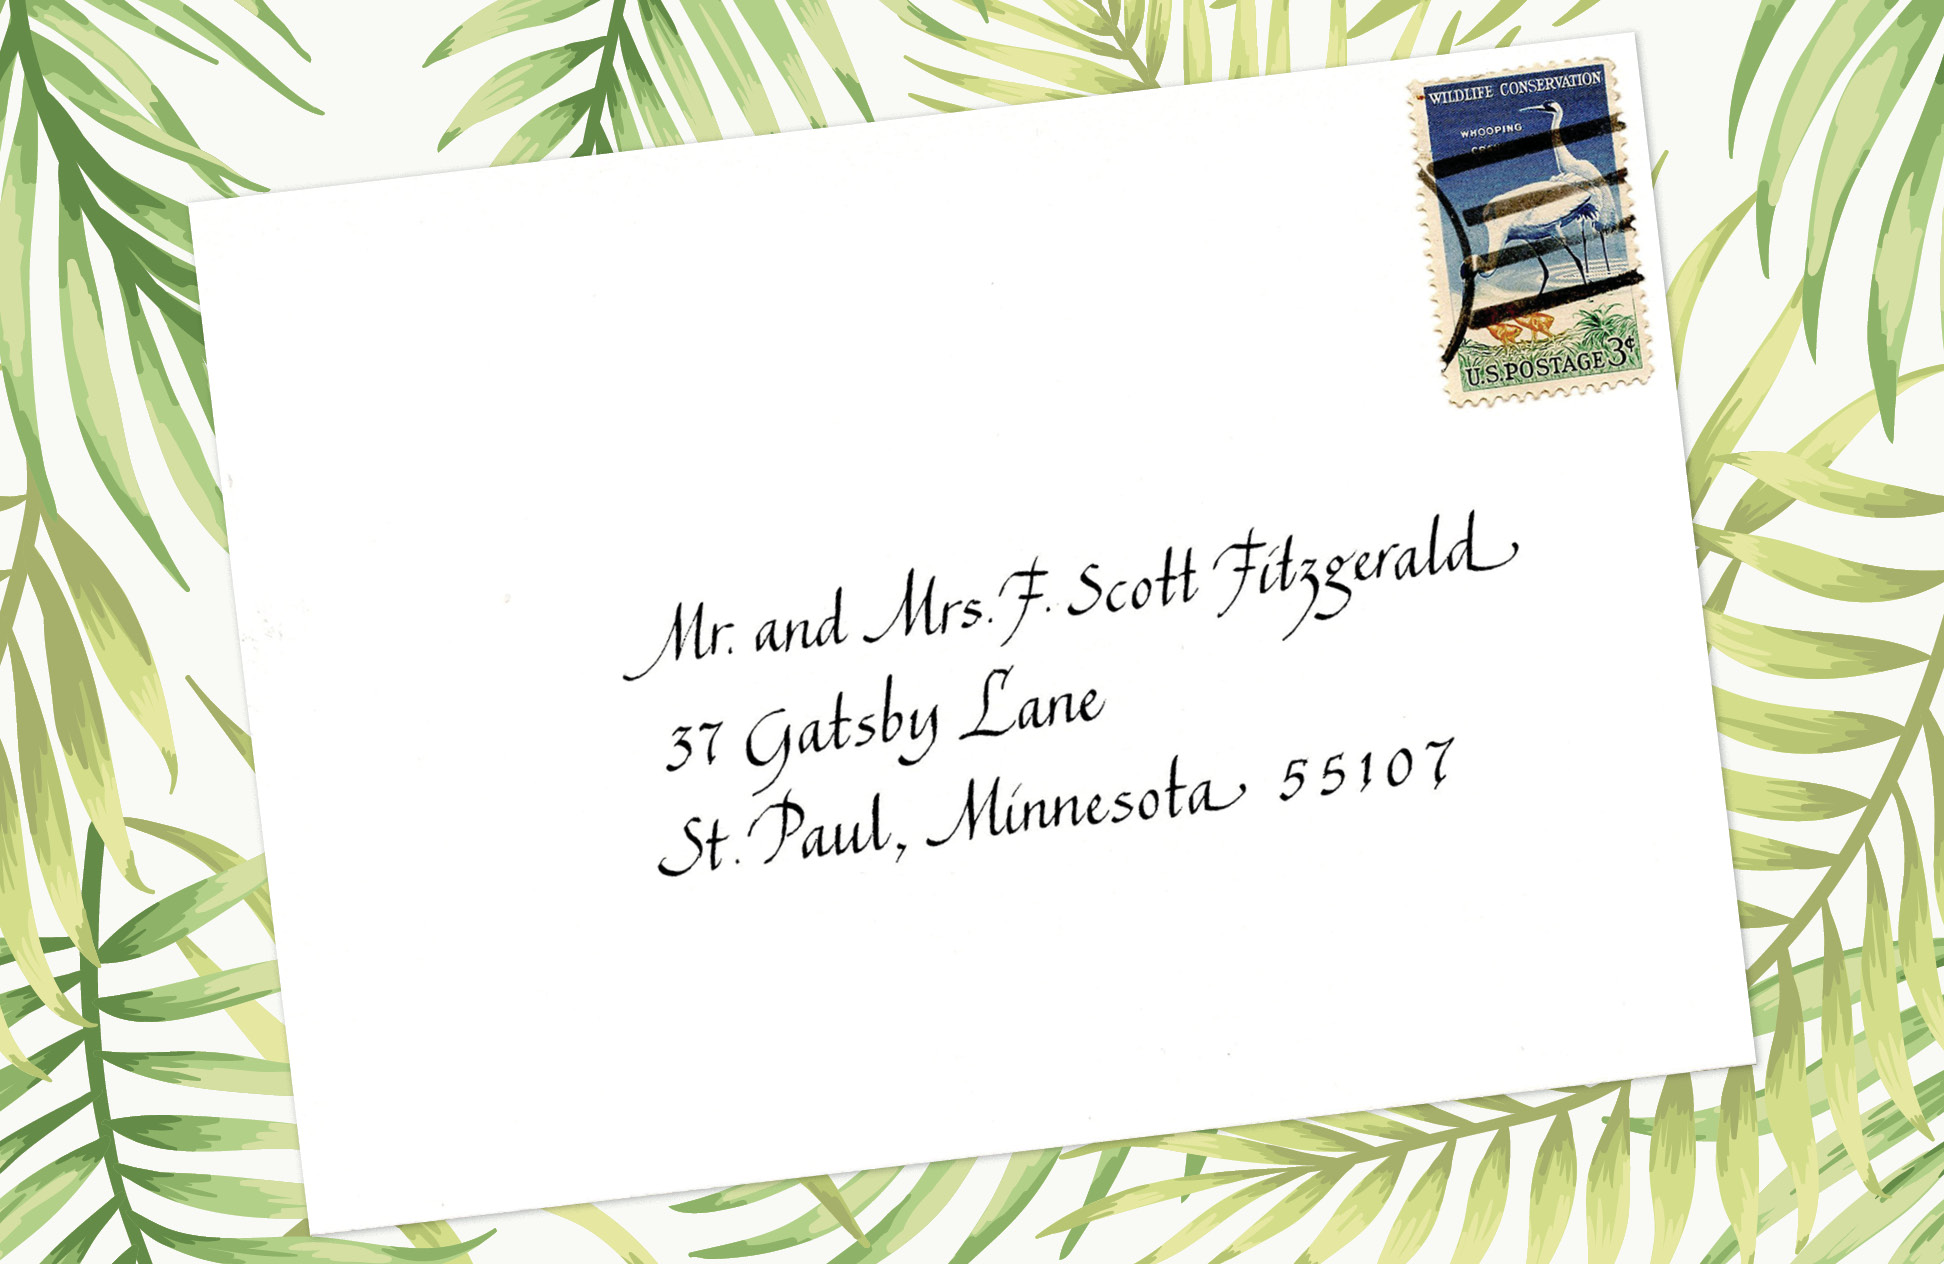 15. Style: Mr. and Mrs. F. Scott Fitzgerald (Chancery Italic)